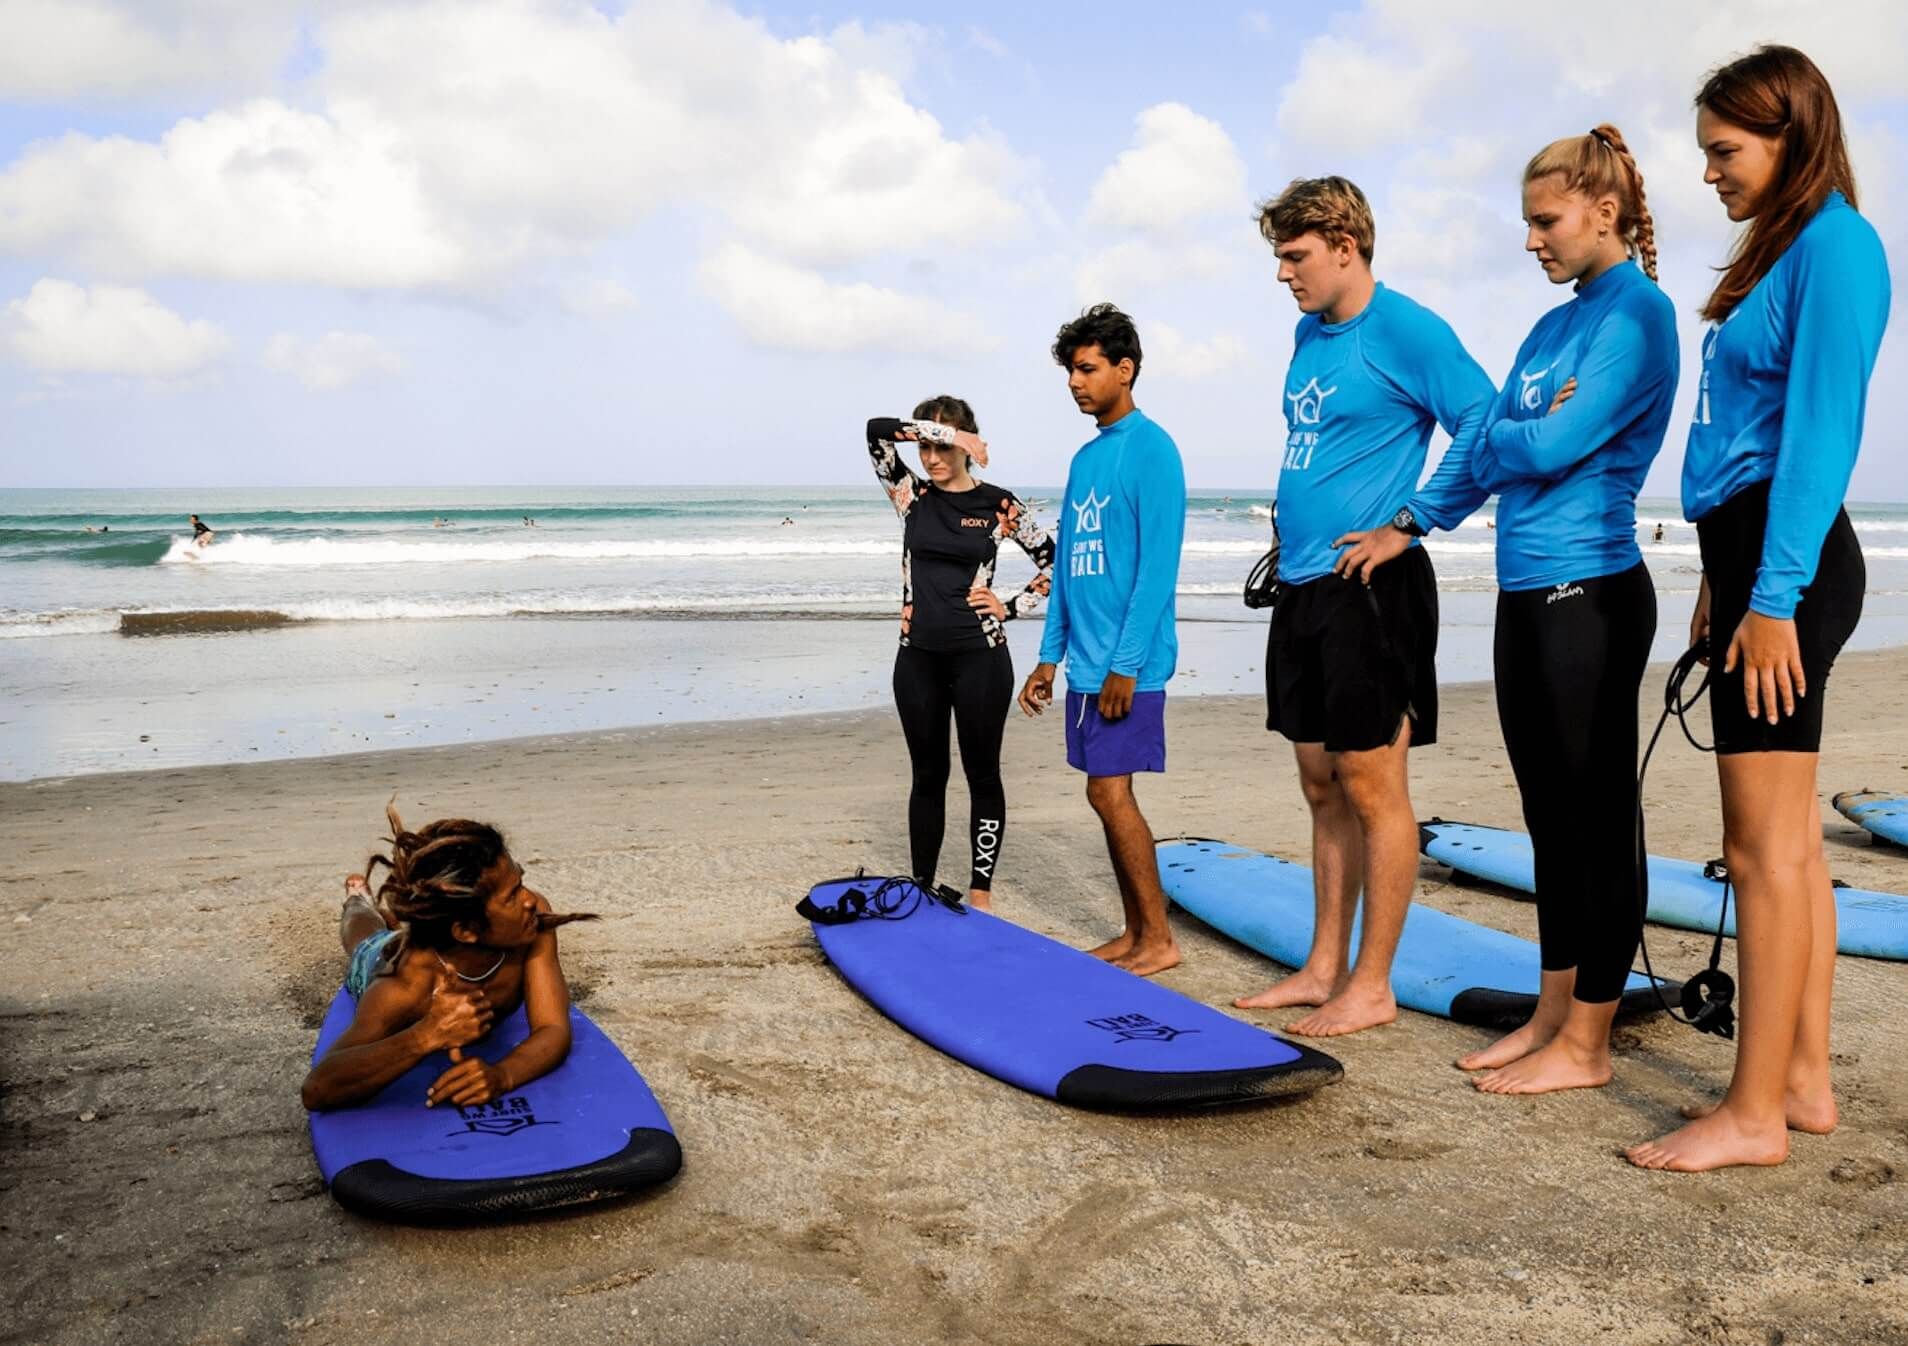 Surf school teacher Bedul at the beach with students in Bali for SurfWG Bali Surf camp